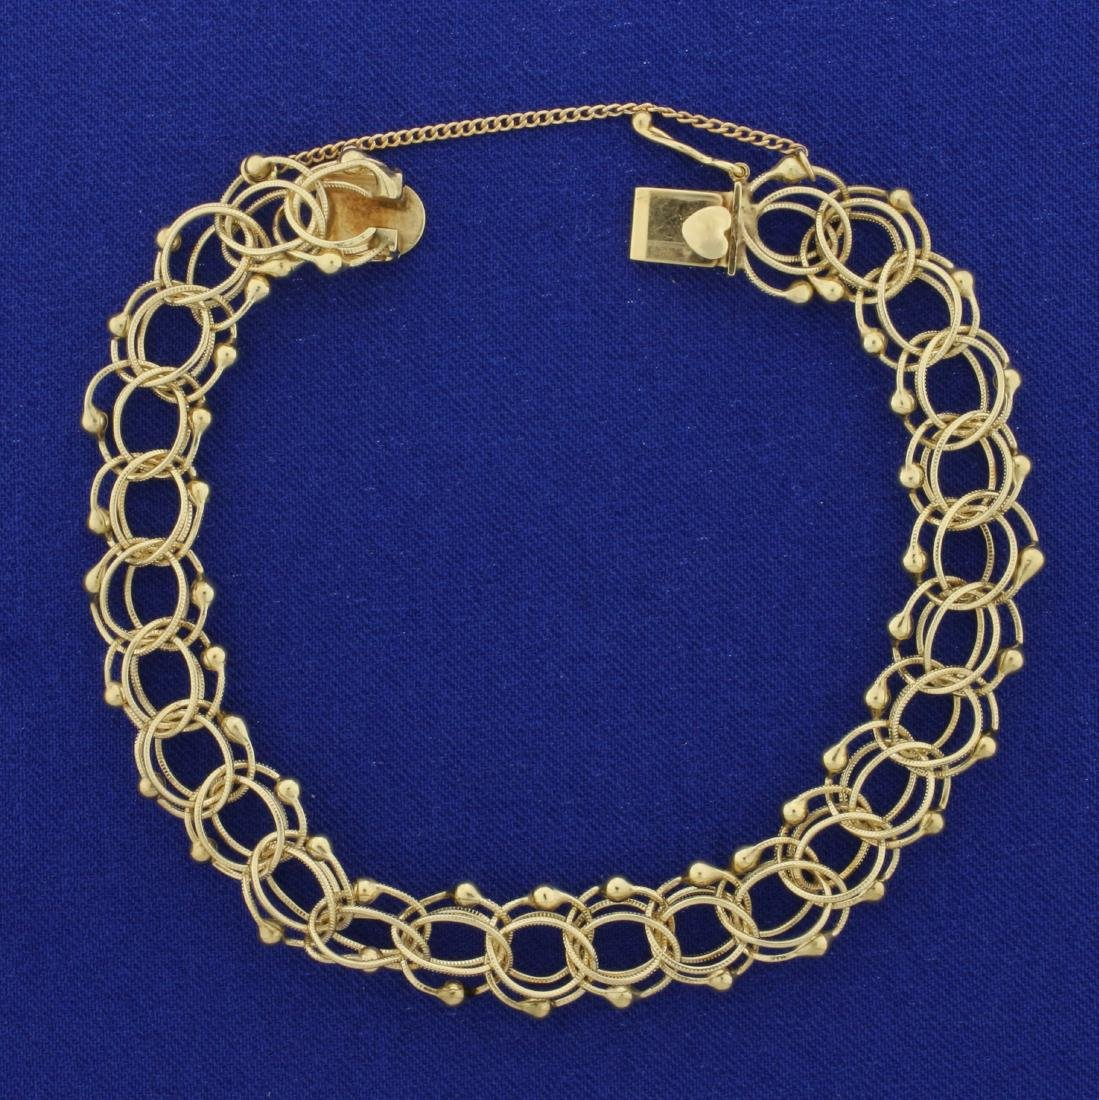 7 1/2 Inch Charm Bracelet in 14K Yellow Gold With Heart